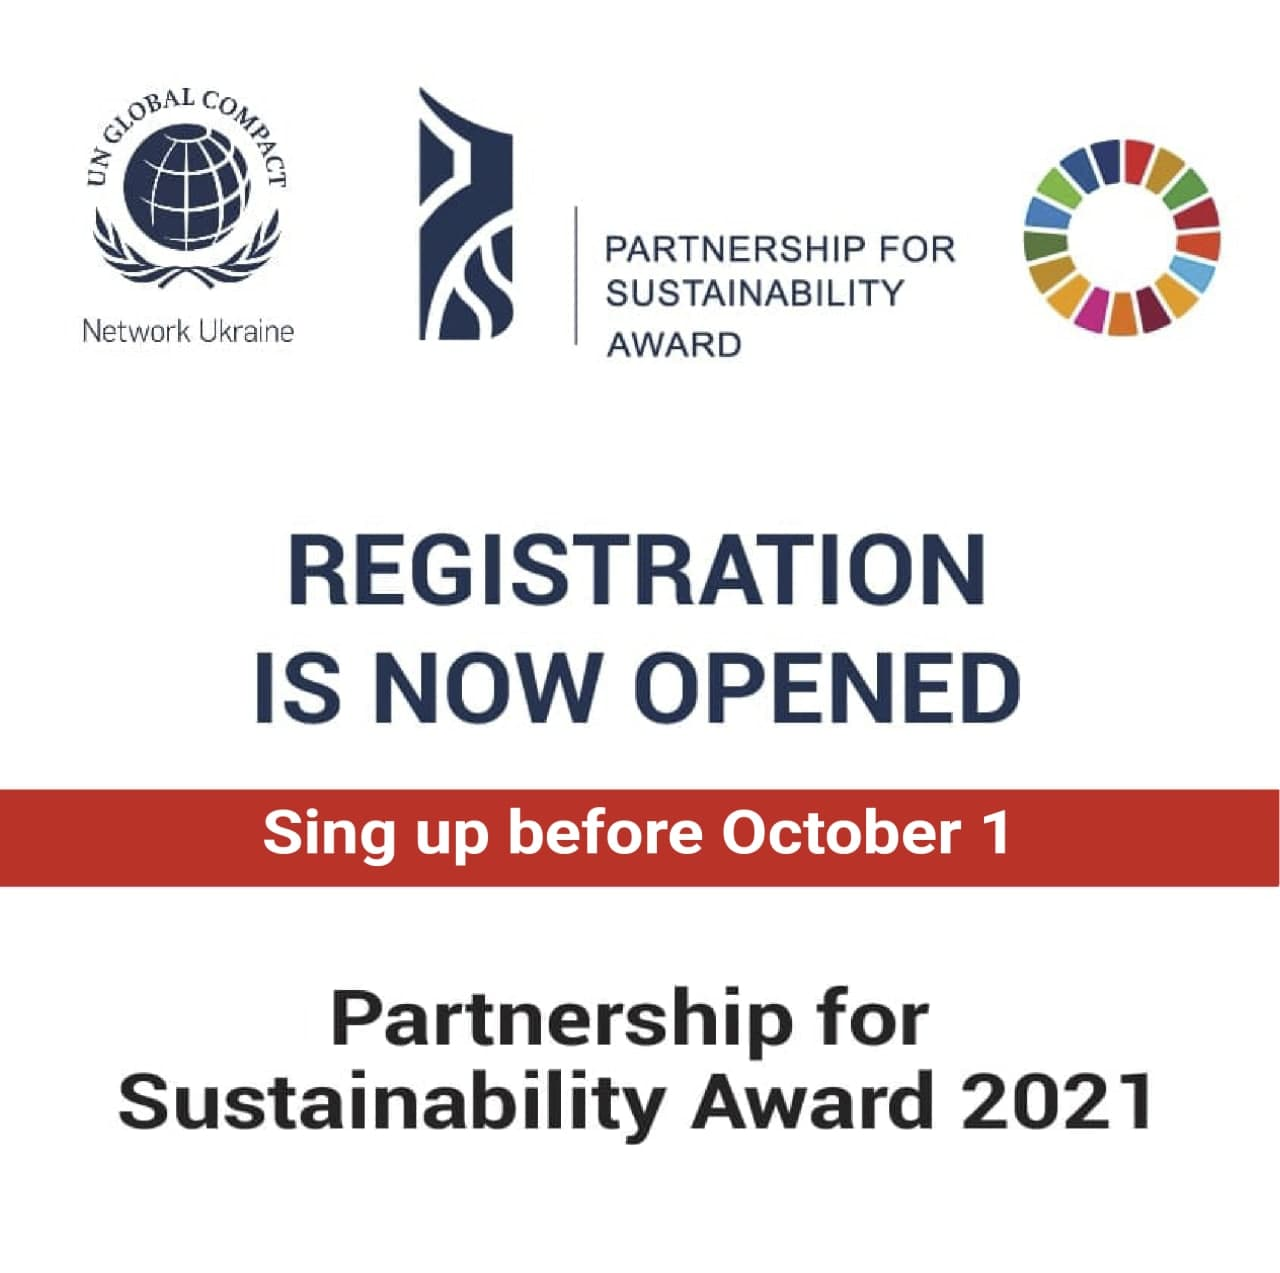 Partnership for Sustainability Award 2021. Call for applications is now open!